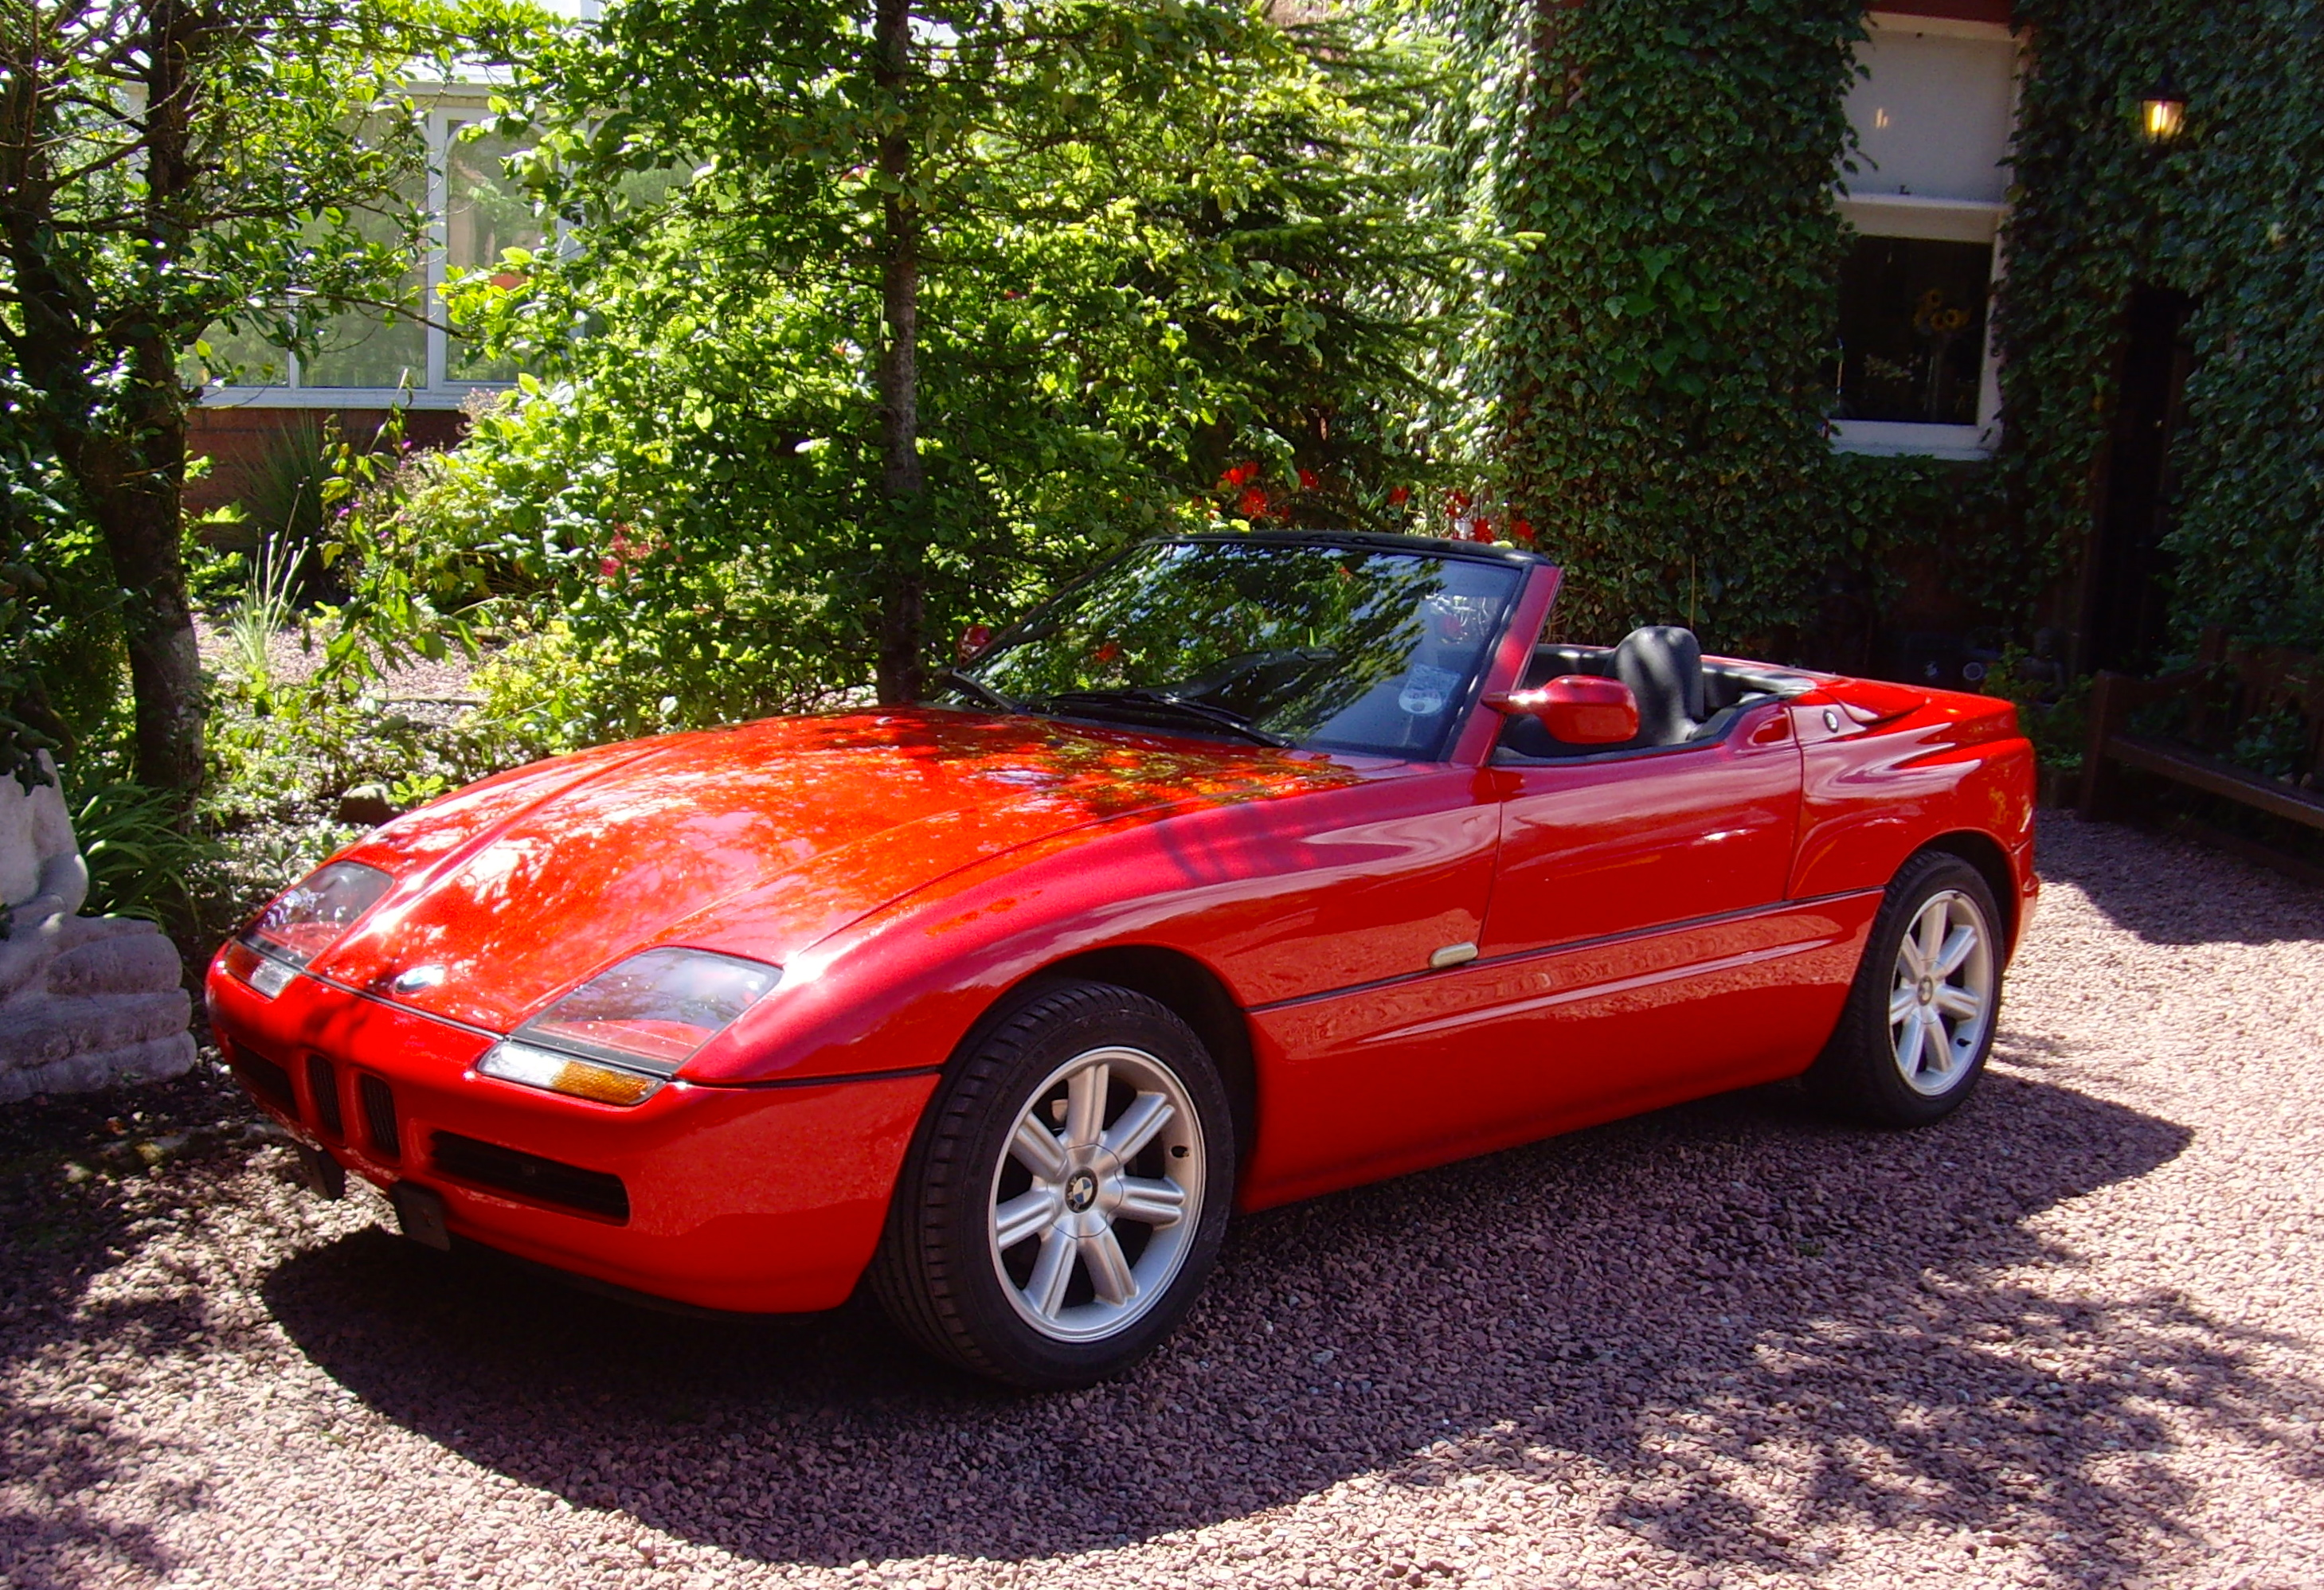 bmw z1 roadster border reiversborder reivers. Black Bedroom Furniture Sets. Home Design Ideas